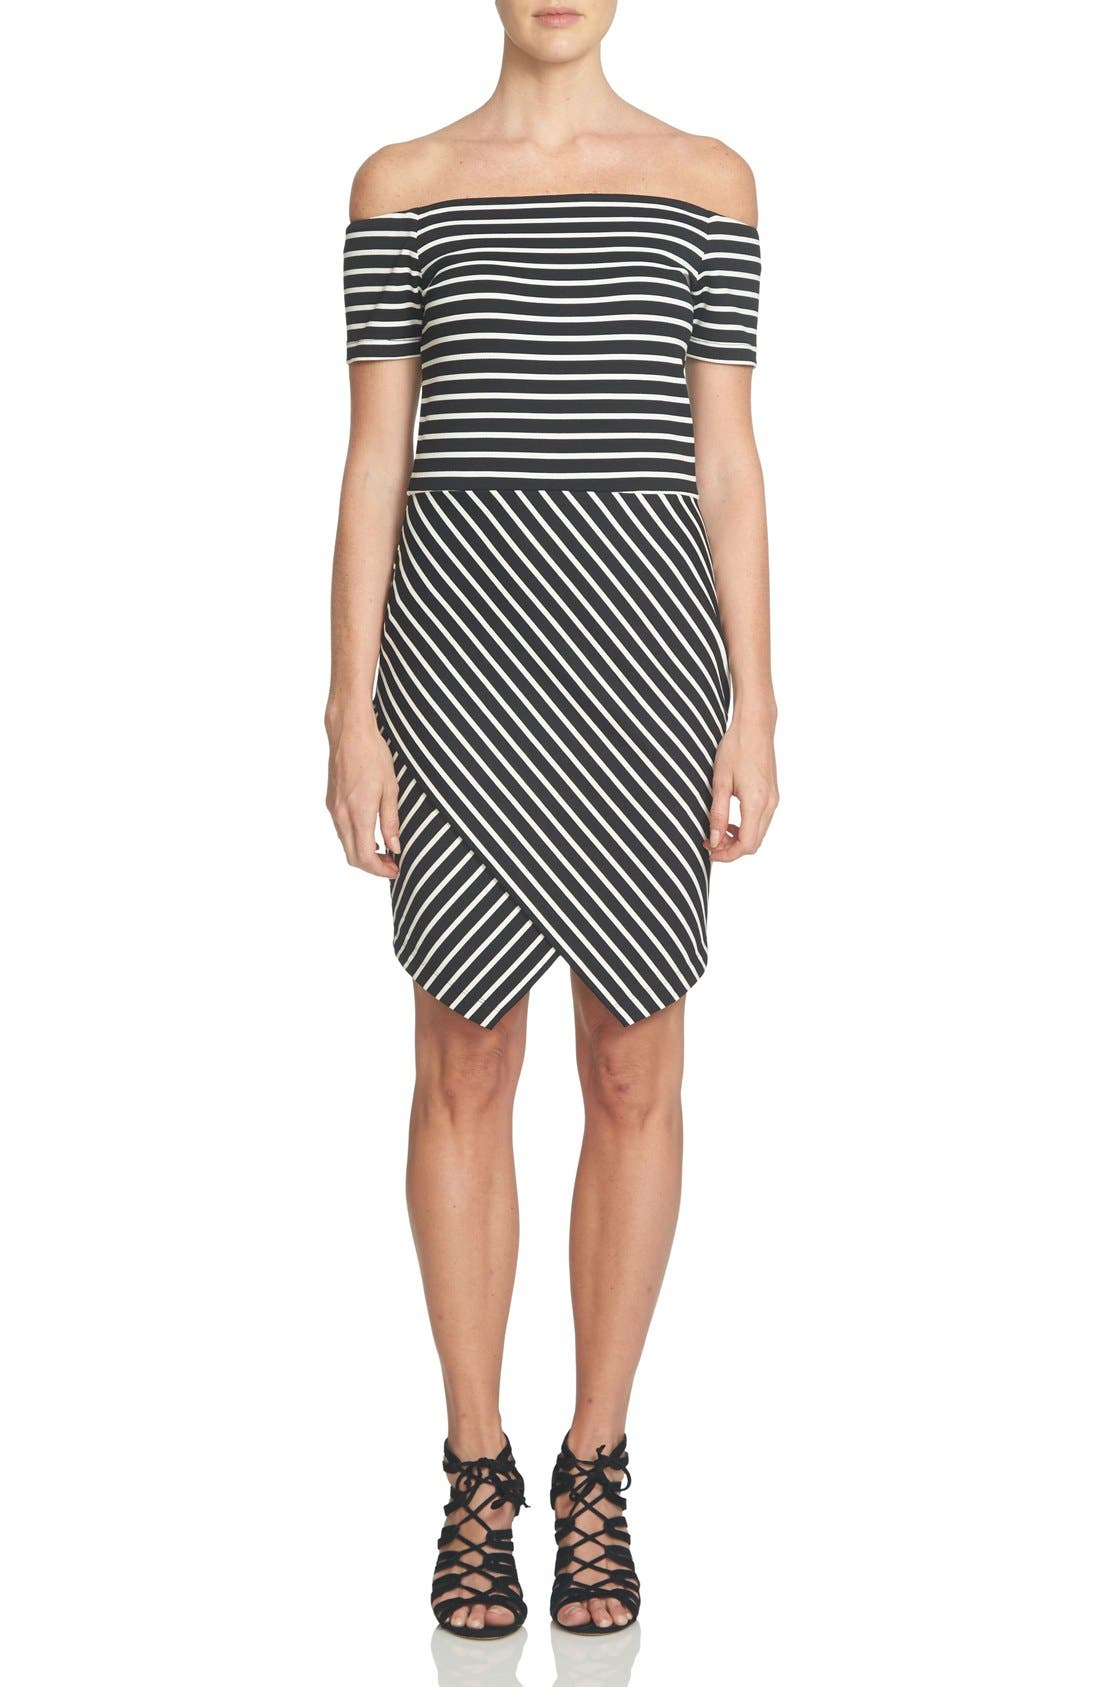 Main Image - 1.STATE Stripe Off the Shoulder Body-Con Dress